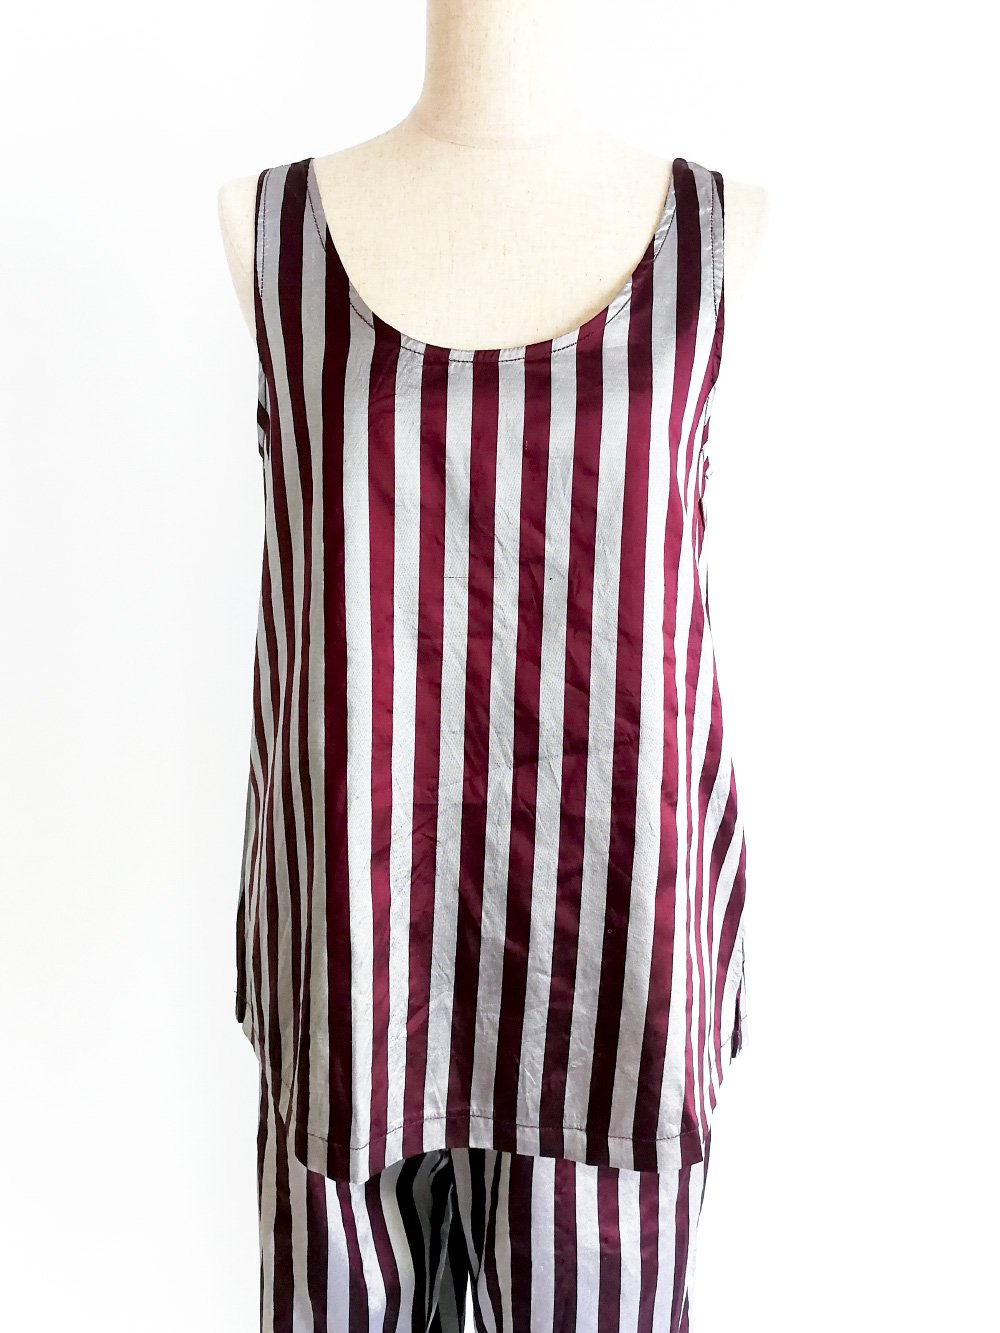 Tanktop / original bordeaux